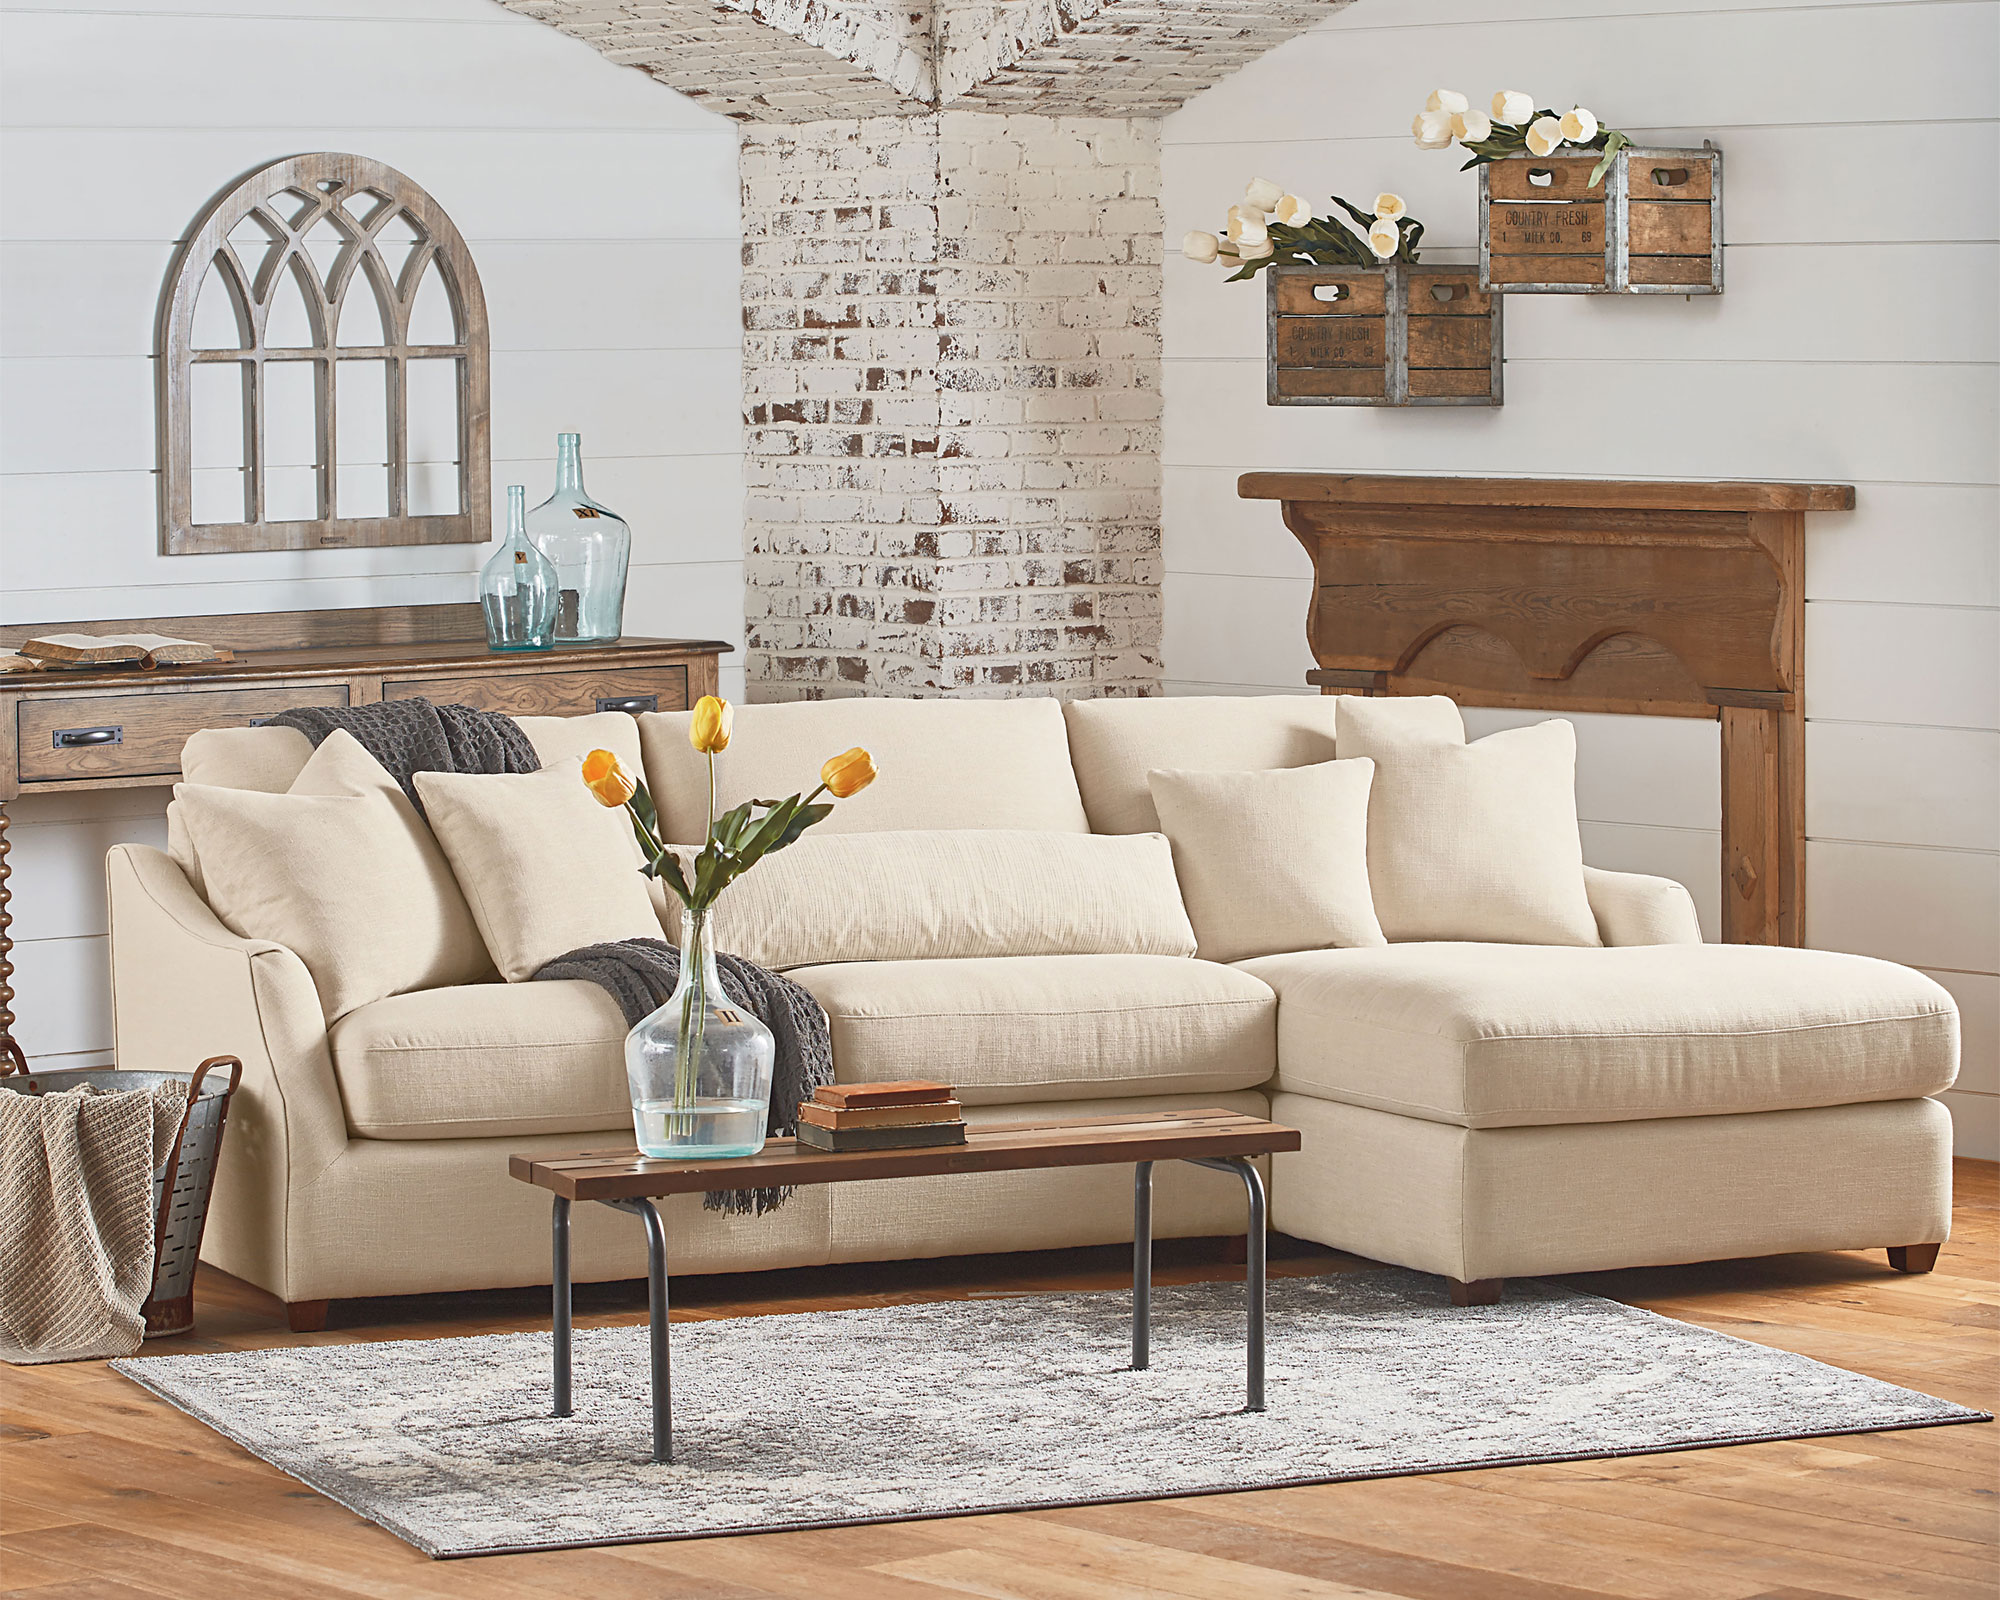 greenfront furniture sofas walmart leather sofa bed magnolia home green front